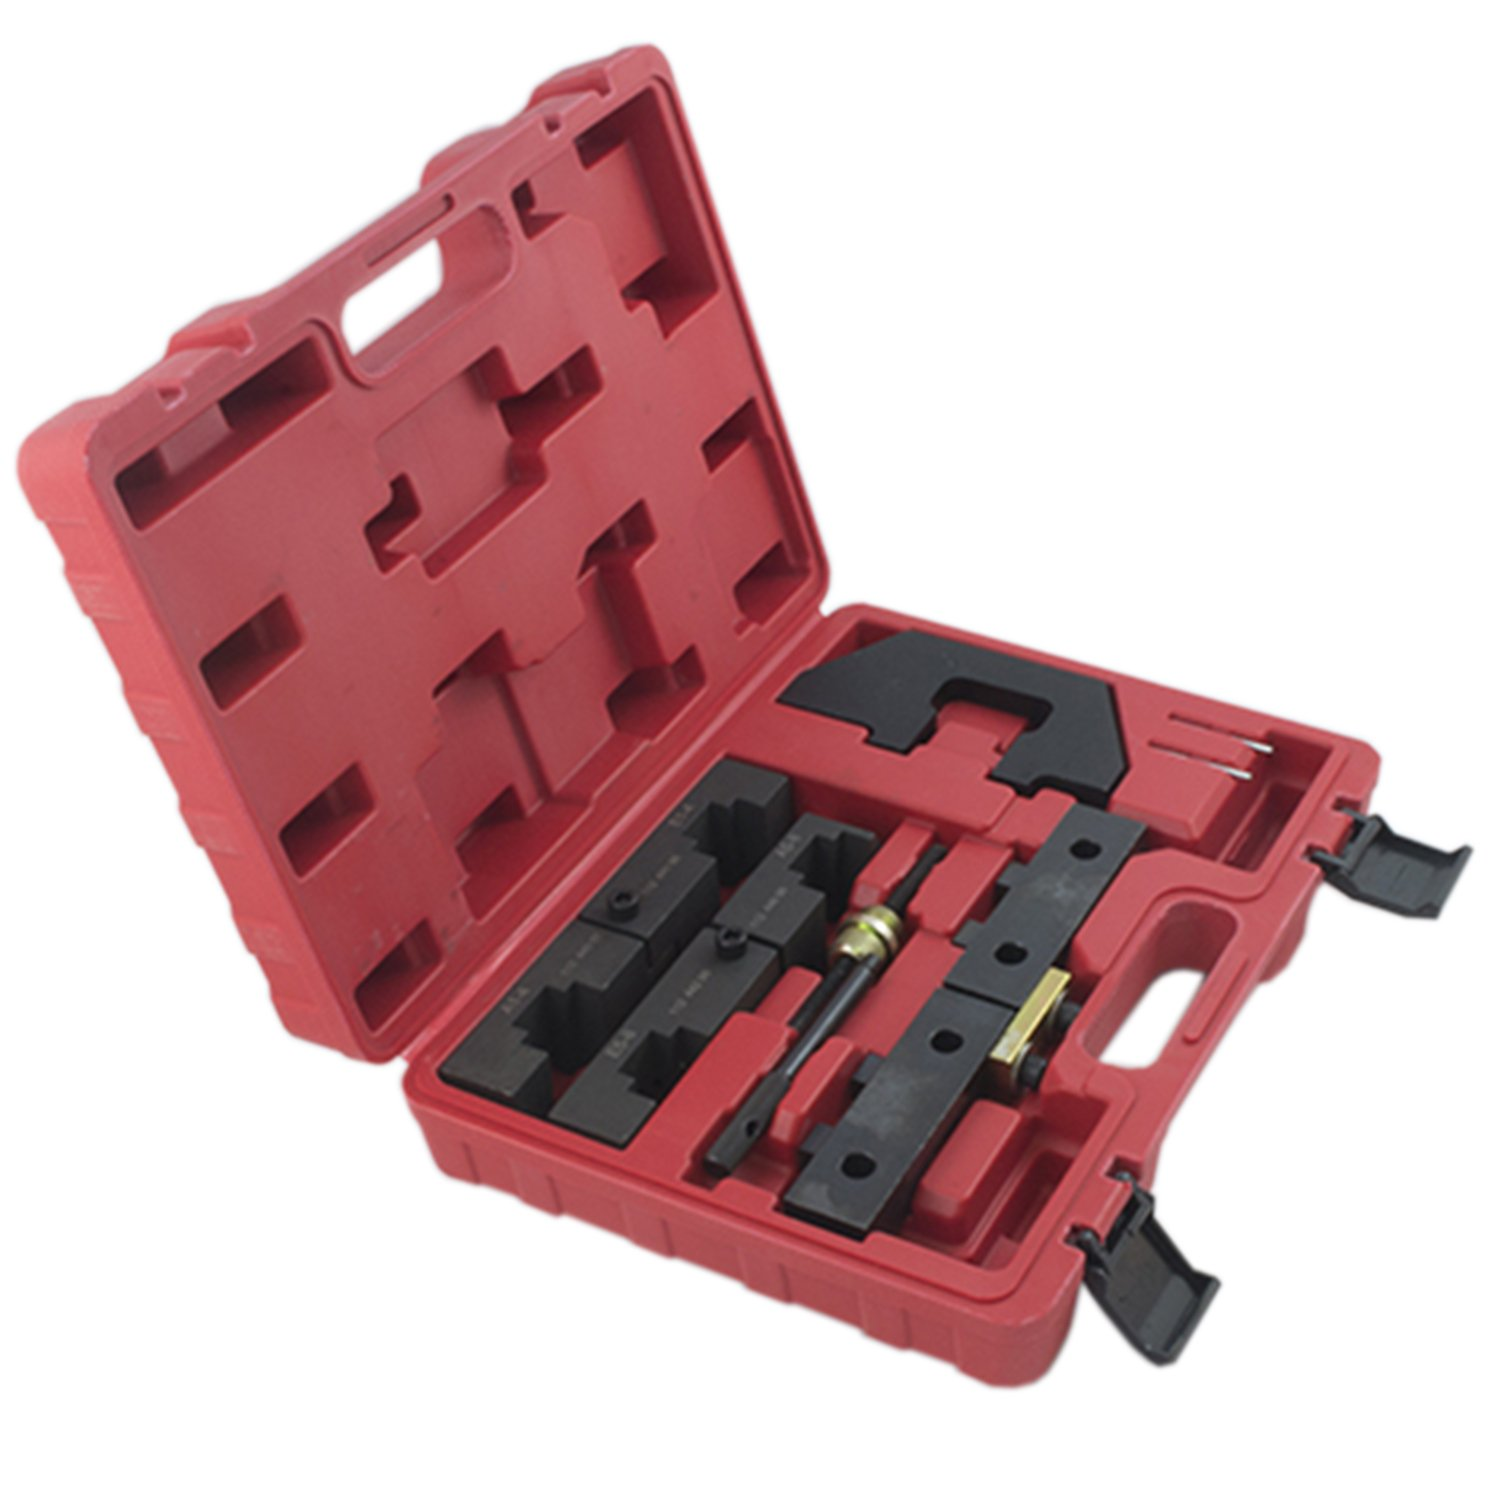 BMW Engine Timing Tool Kit For Engine Models M40 M42 M50 M60 M62 M70